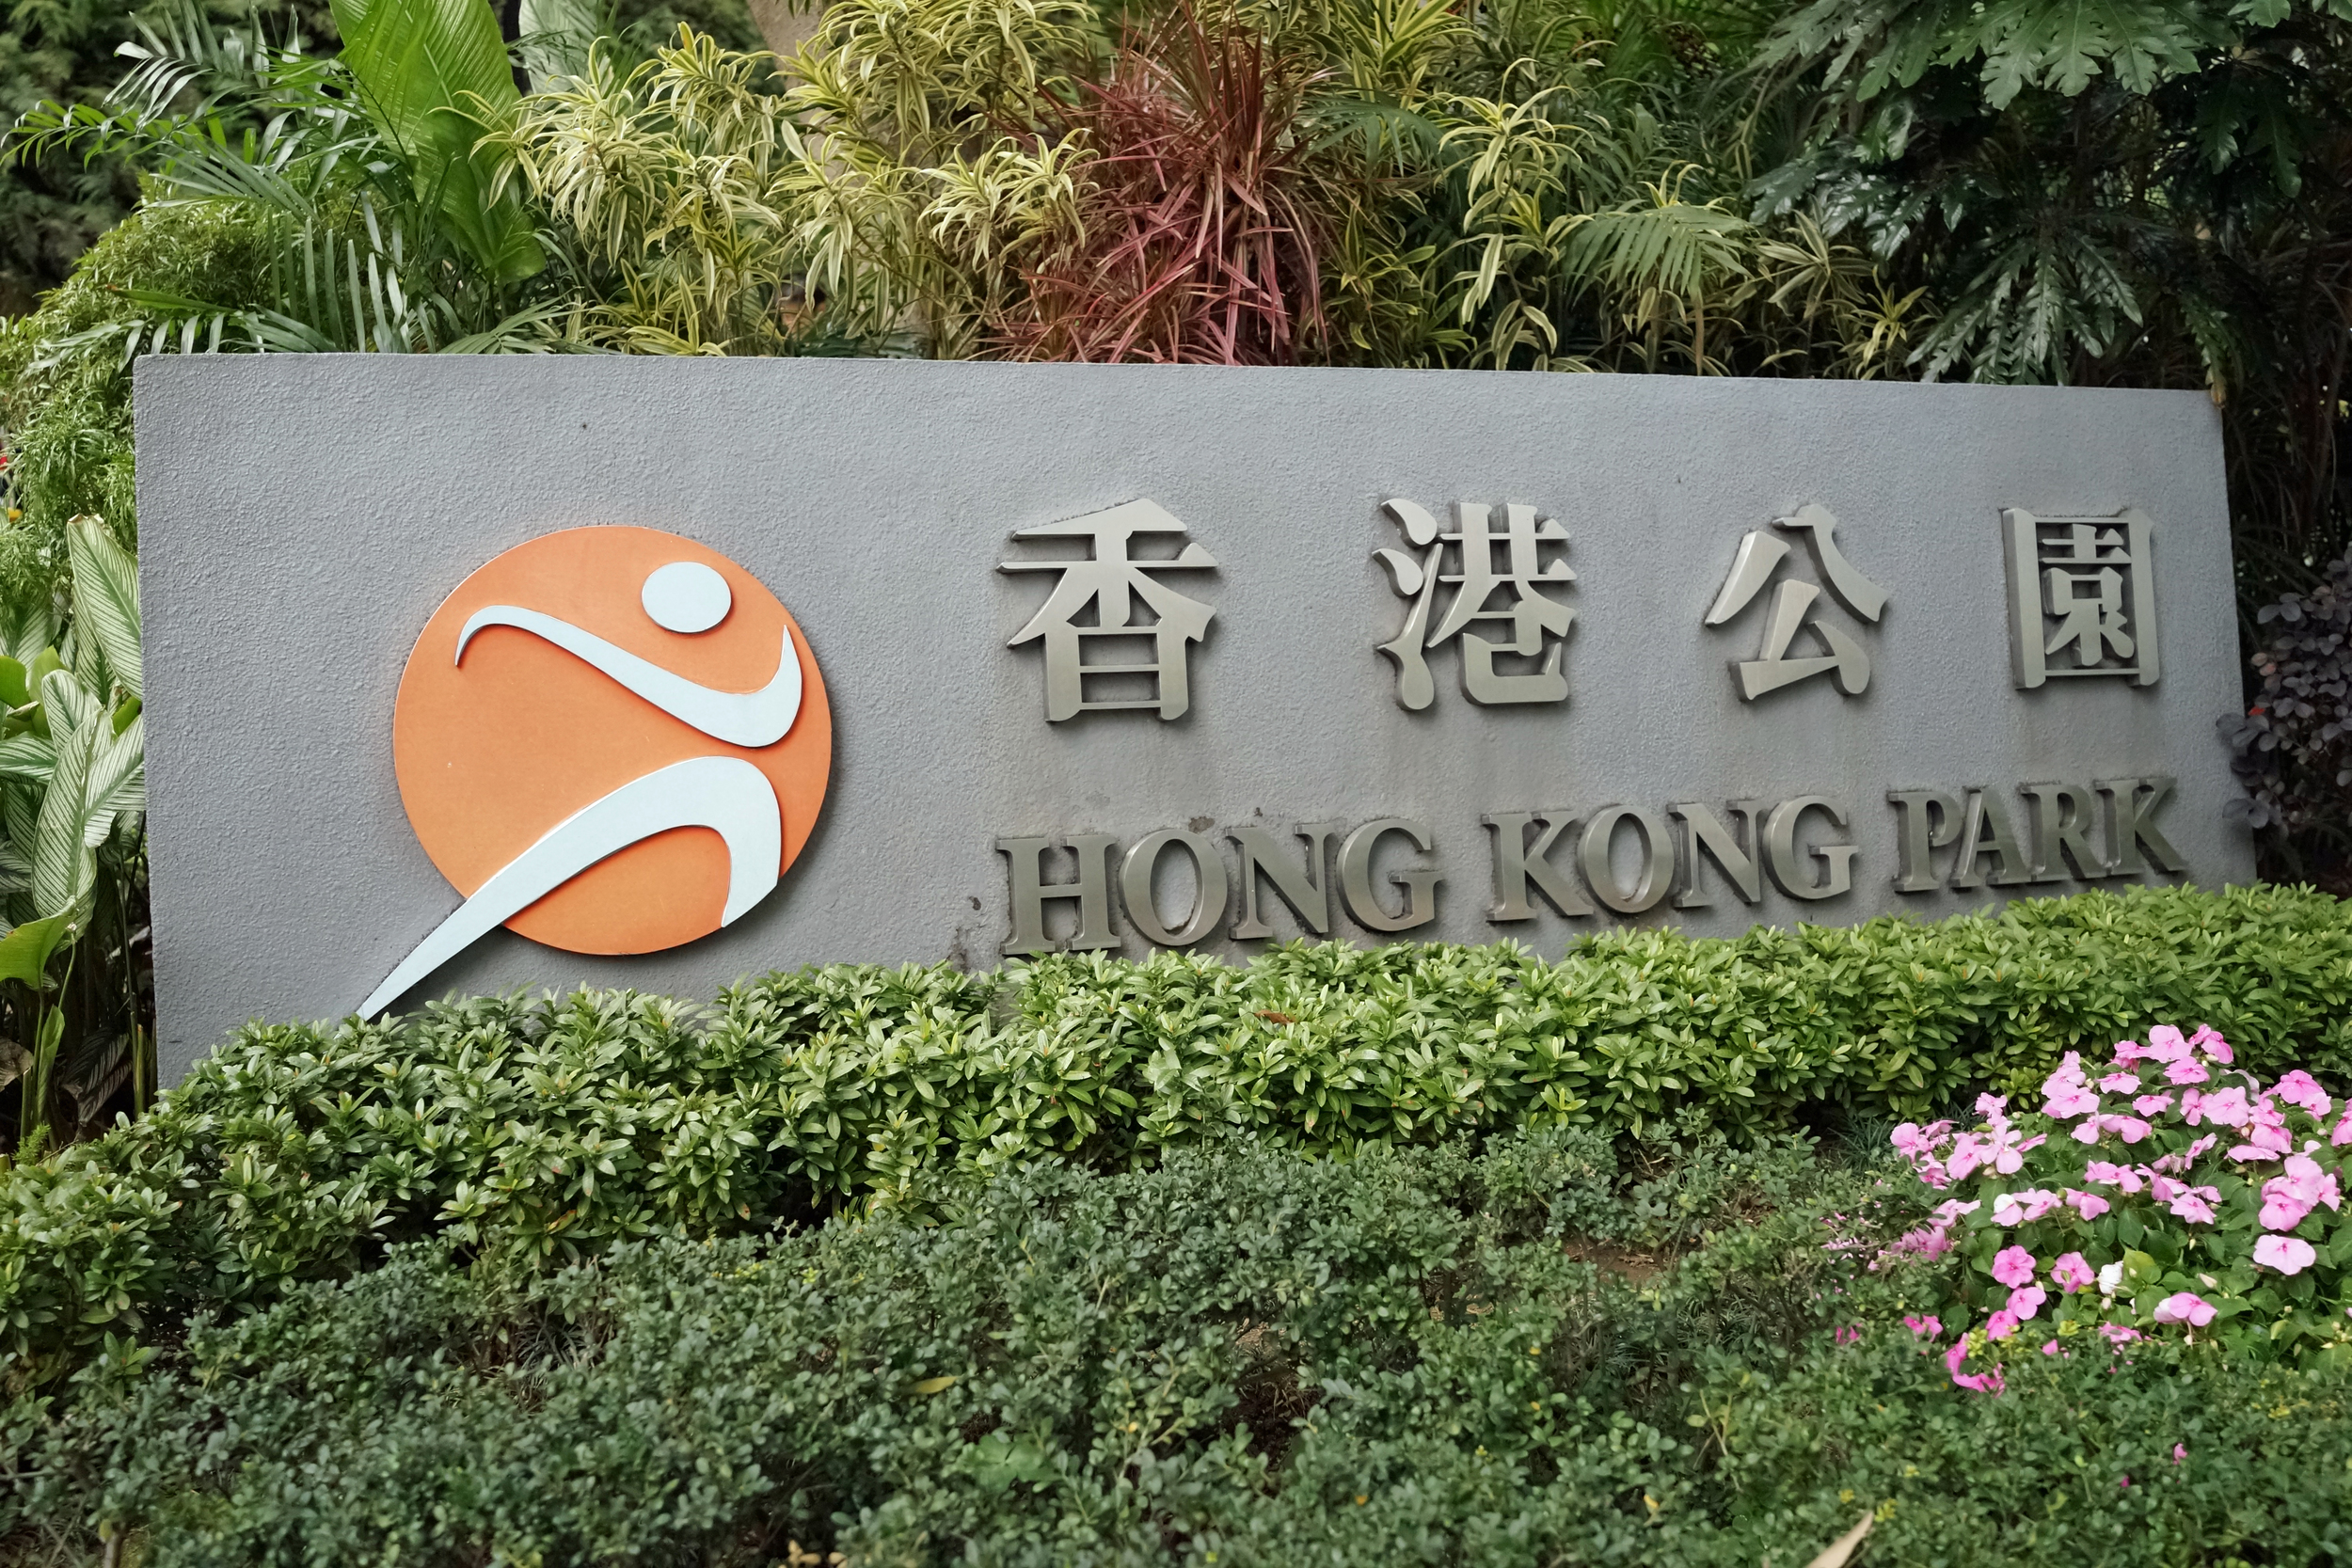 Hong Kong Park which is at Admiralty on Hong Kong Island is a wonderful quiet spot in the middle of the hustle and bustle of the Financial District, it is underrated but I think it is very much worth a visit particularly for the Aviary.